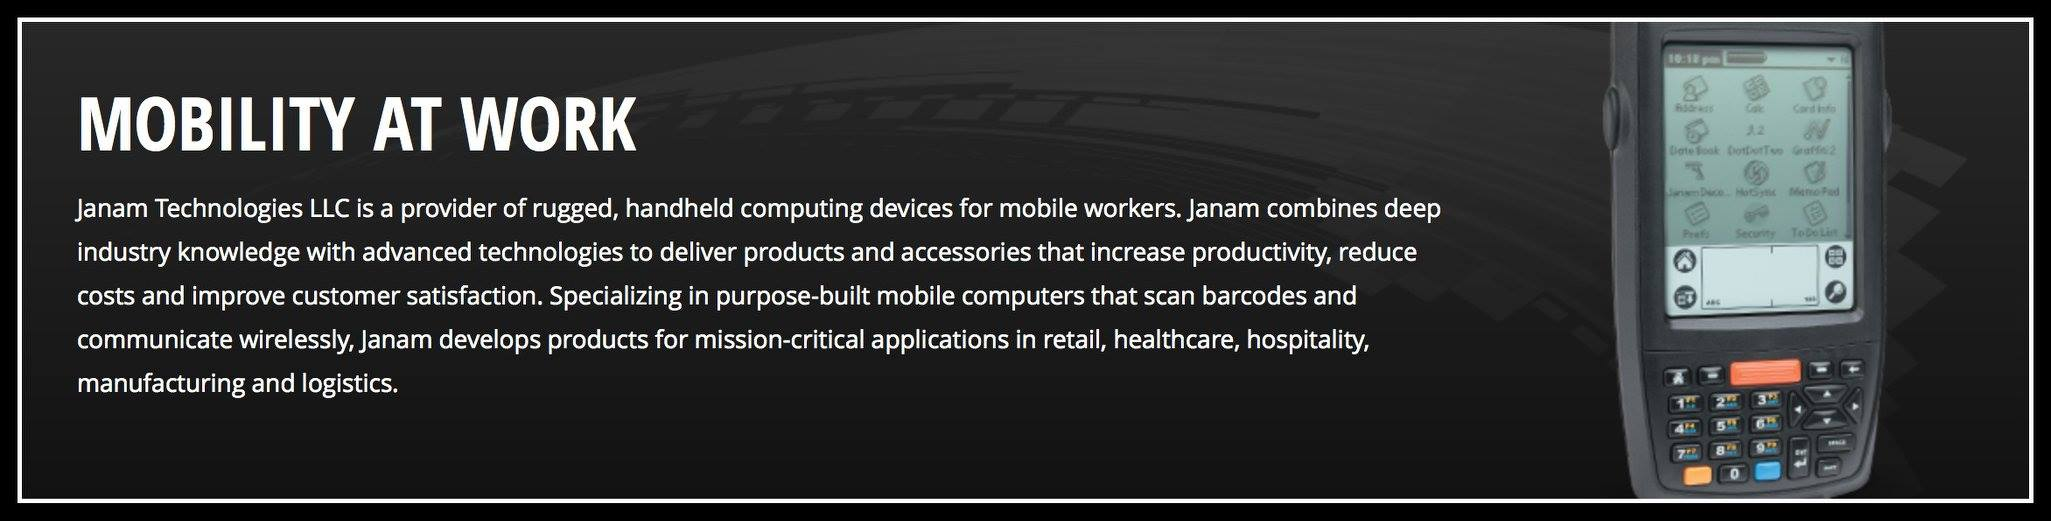 Janam-Mobility-At-Work